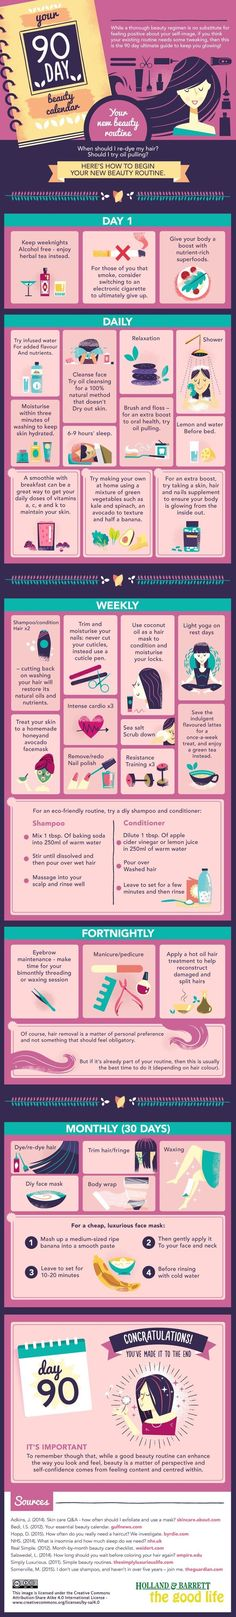 Beauty Routine Skin Care - Holland and Barrett present a 90-day schedule to make sure you remain at your beautiful best in a completely healthy way—all in a wonderful infographic. A good exfoliation is essential to clean the skin and eliminate dead cells. This prevents dirt from clogging pores and acne or blackheads.